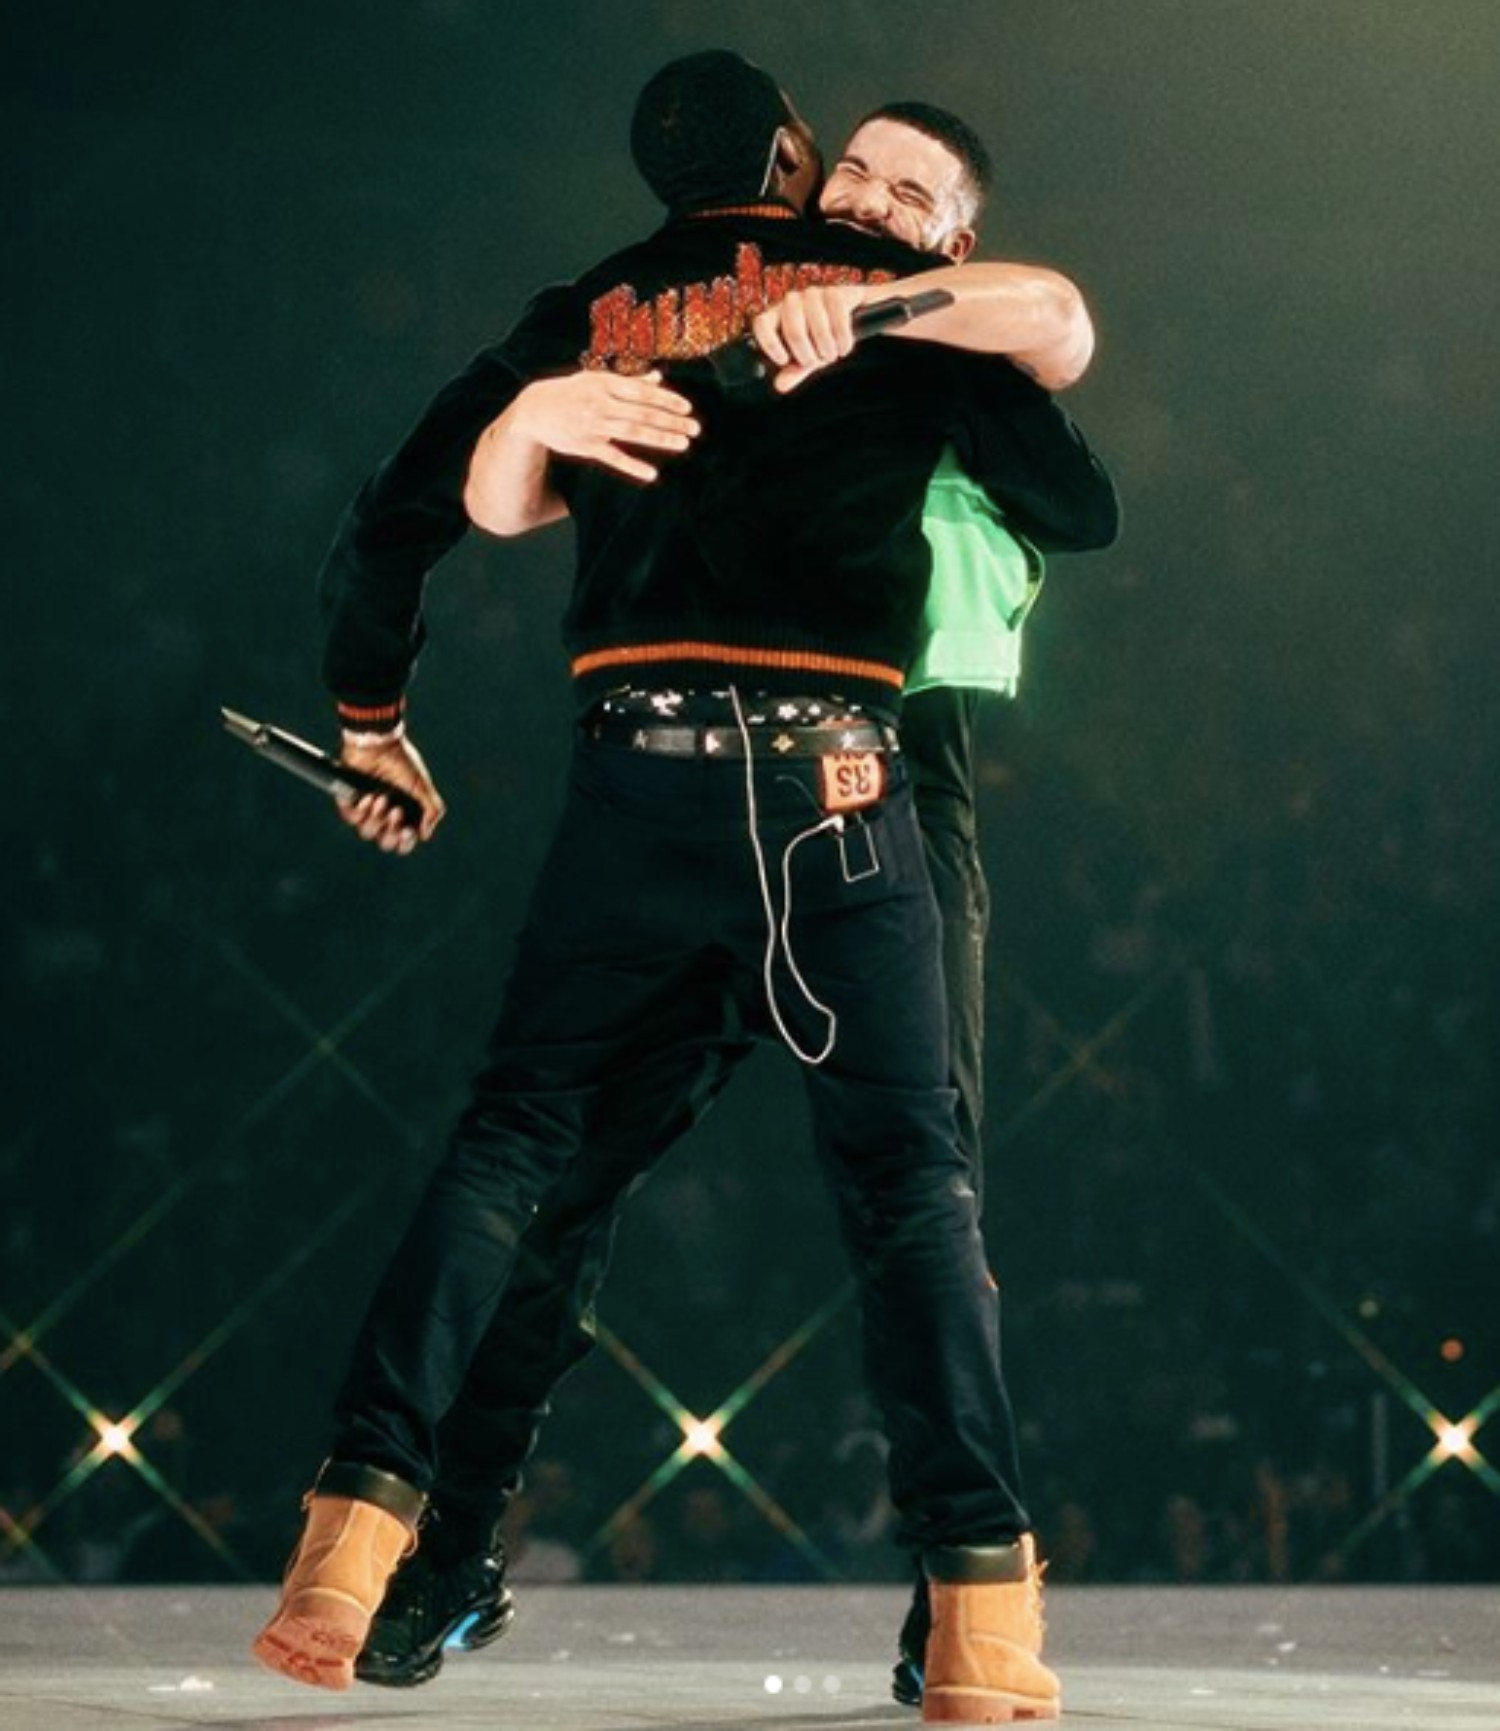 SPOTTED: Drake & Meek Mill Appear to End Feud